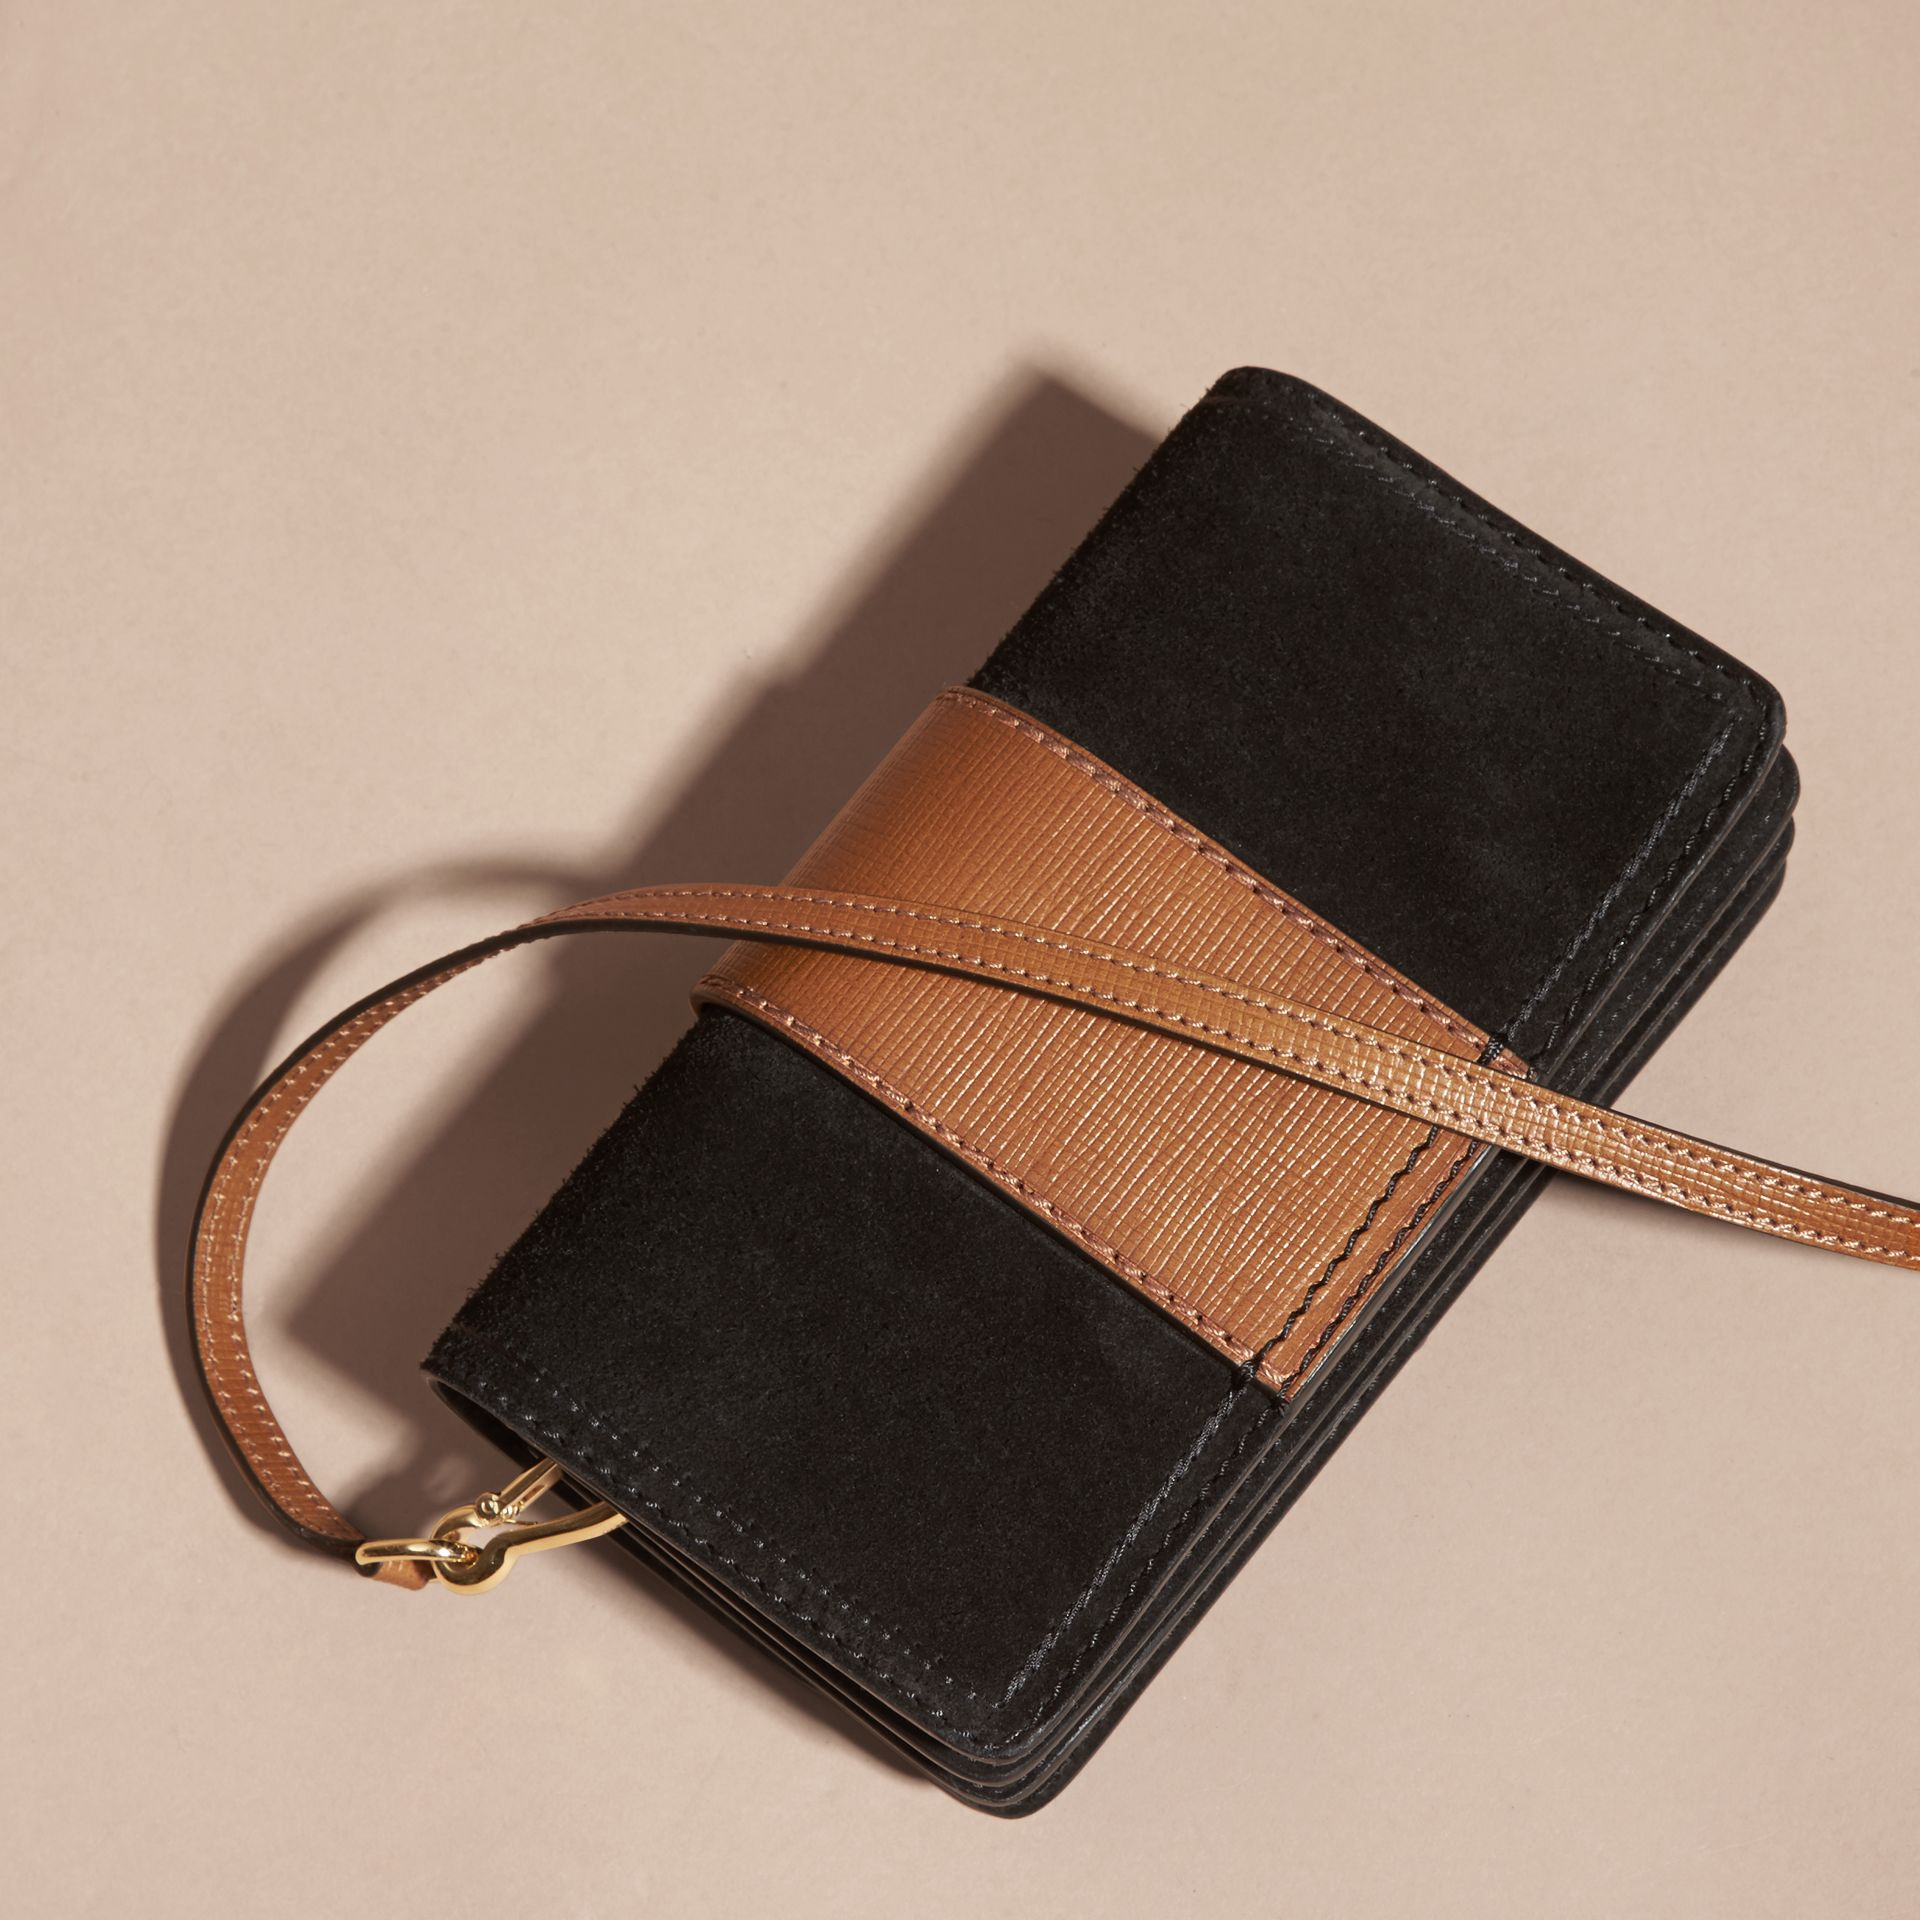 Black / tan The Small Buckle Bag in Suede with Topstitching Black / Tan - gallery image 5